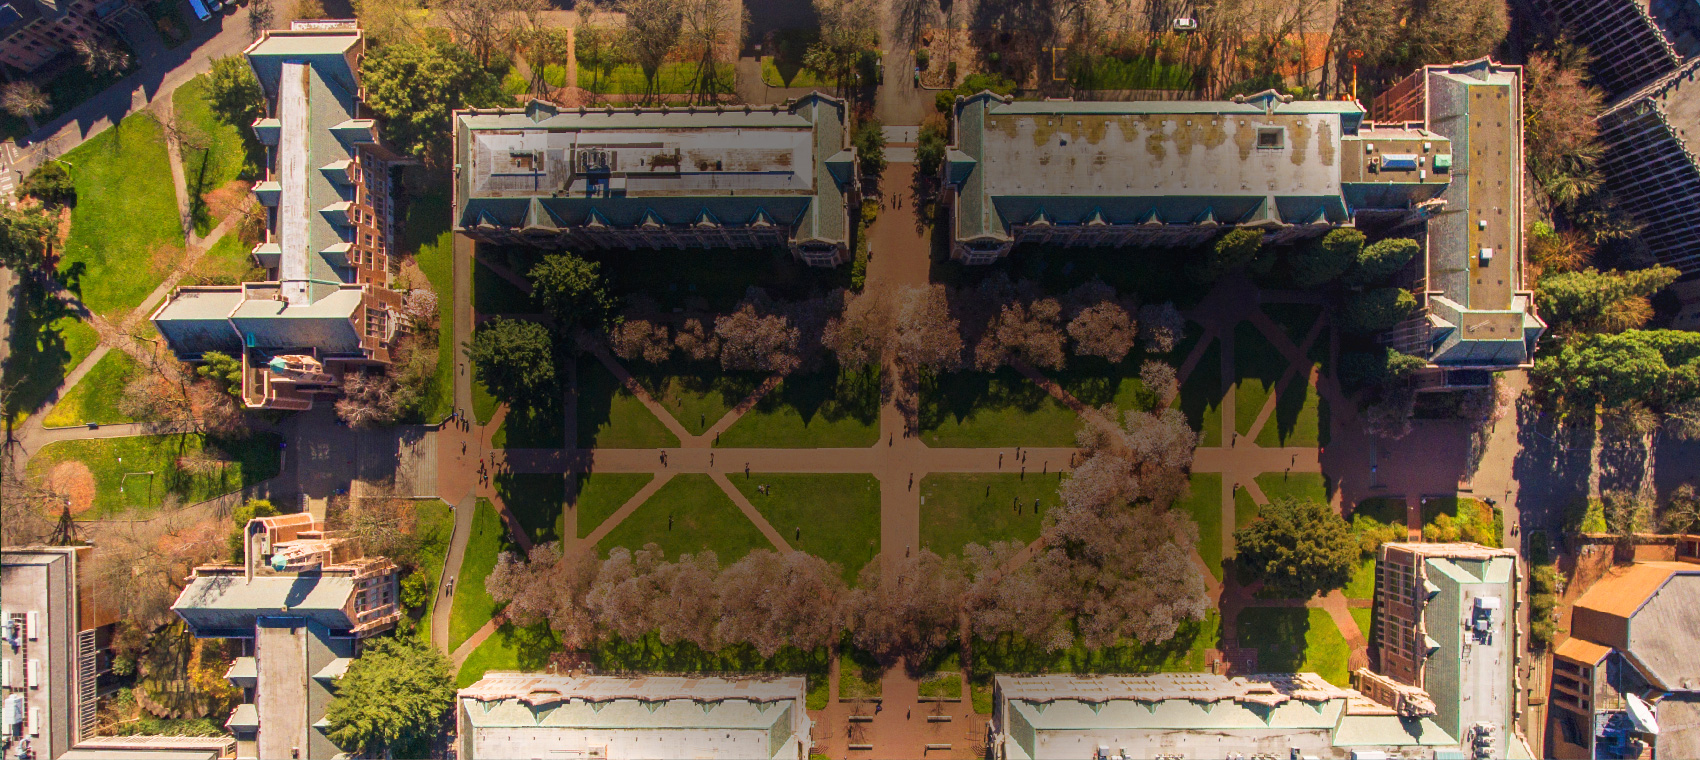 UW Liberal Arts Quadrangle as seen from the air